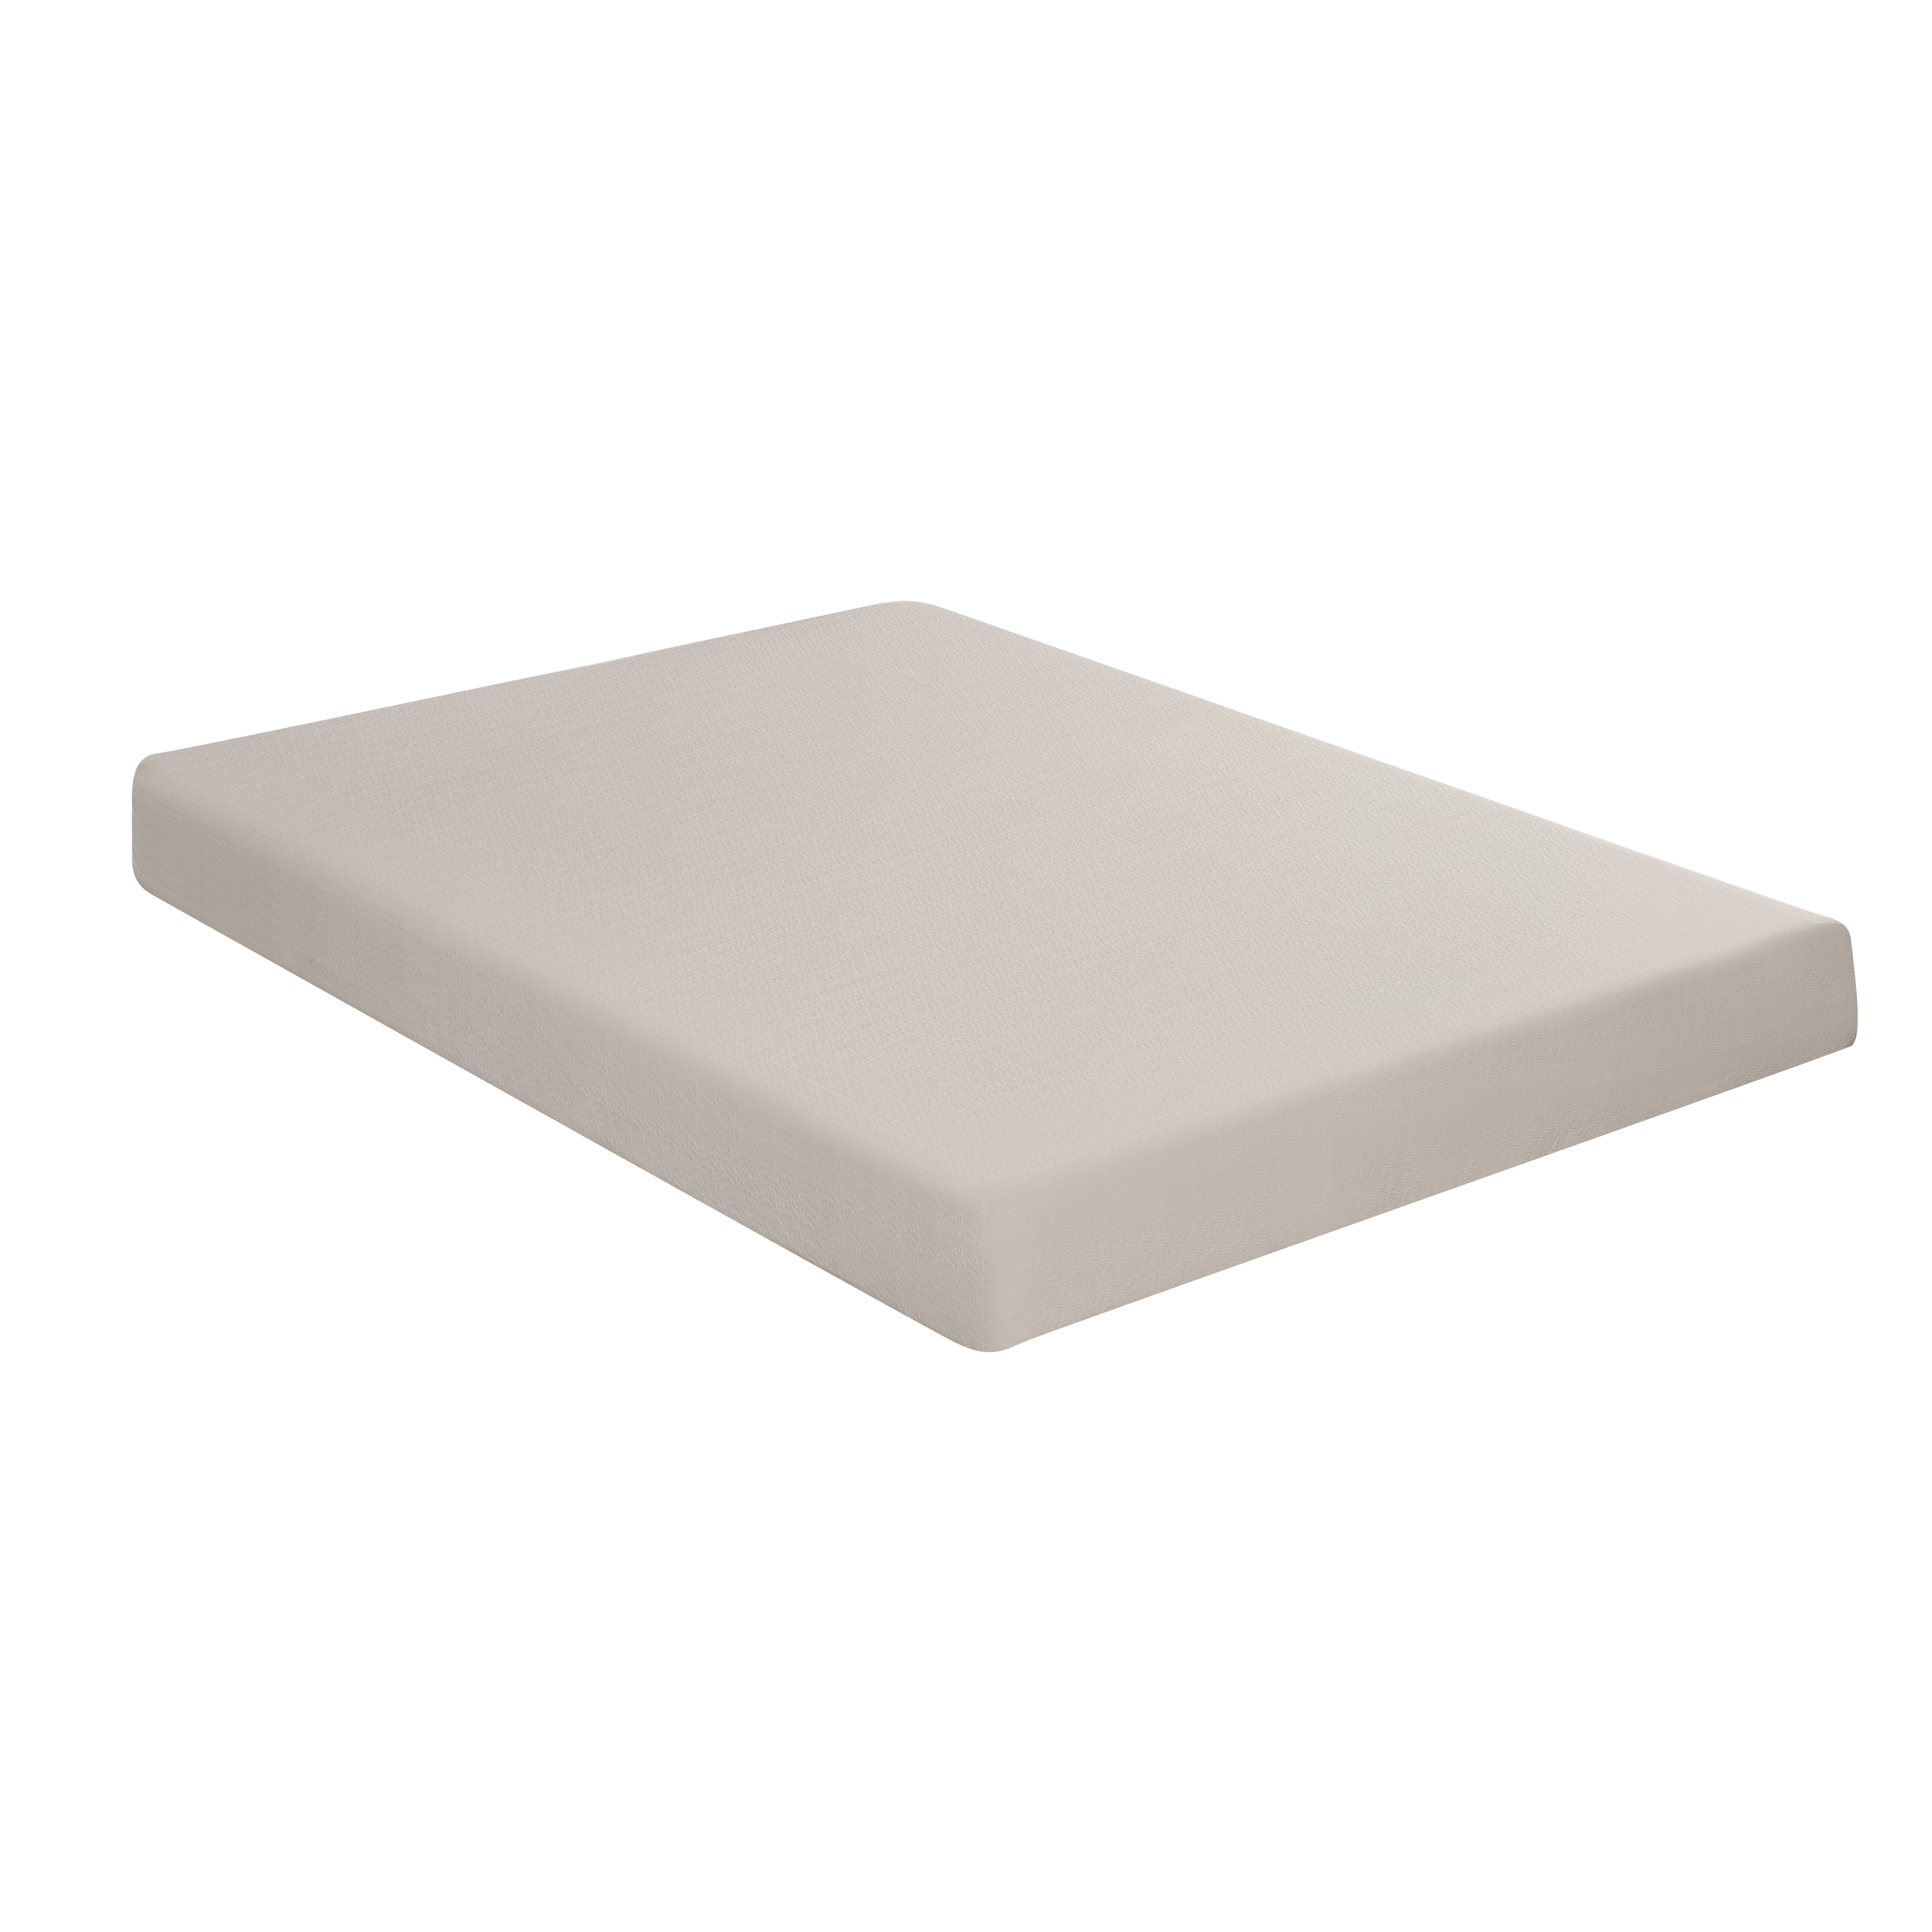 Signature sleep memoir 8 full size memory foam mattress reviews Full size memory foam mattress